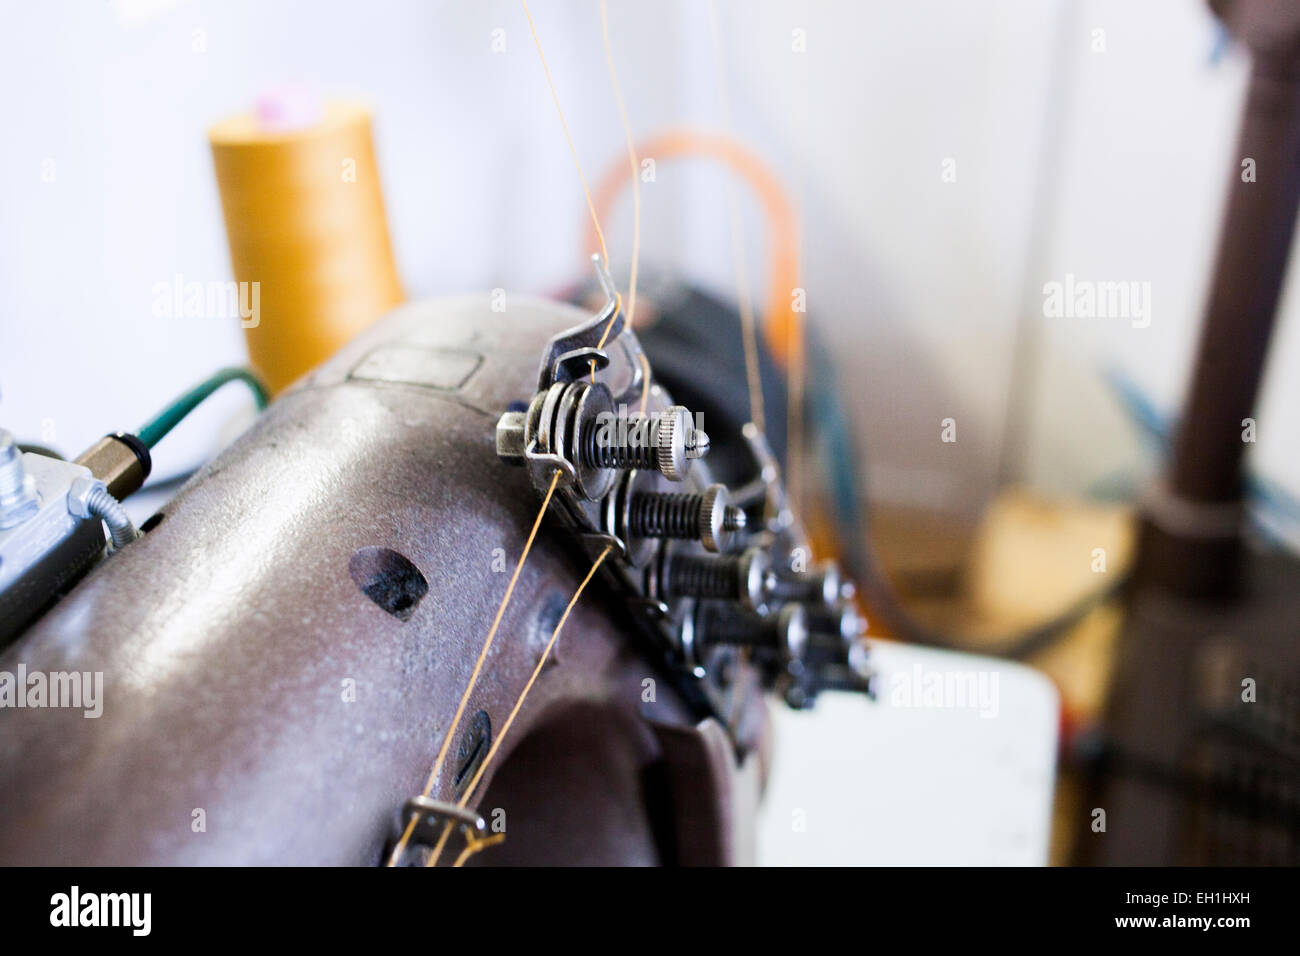 Close-up of sewing machine at jeans factory - Stock Image